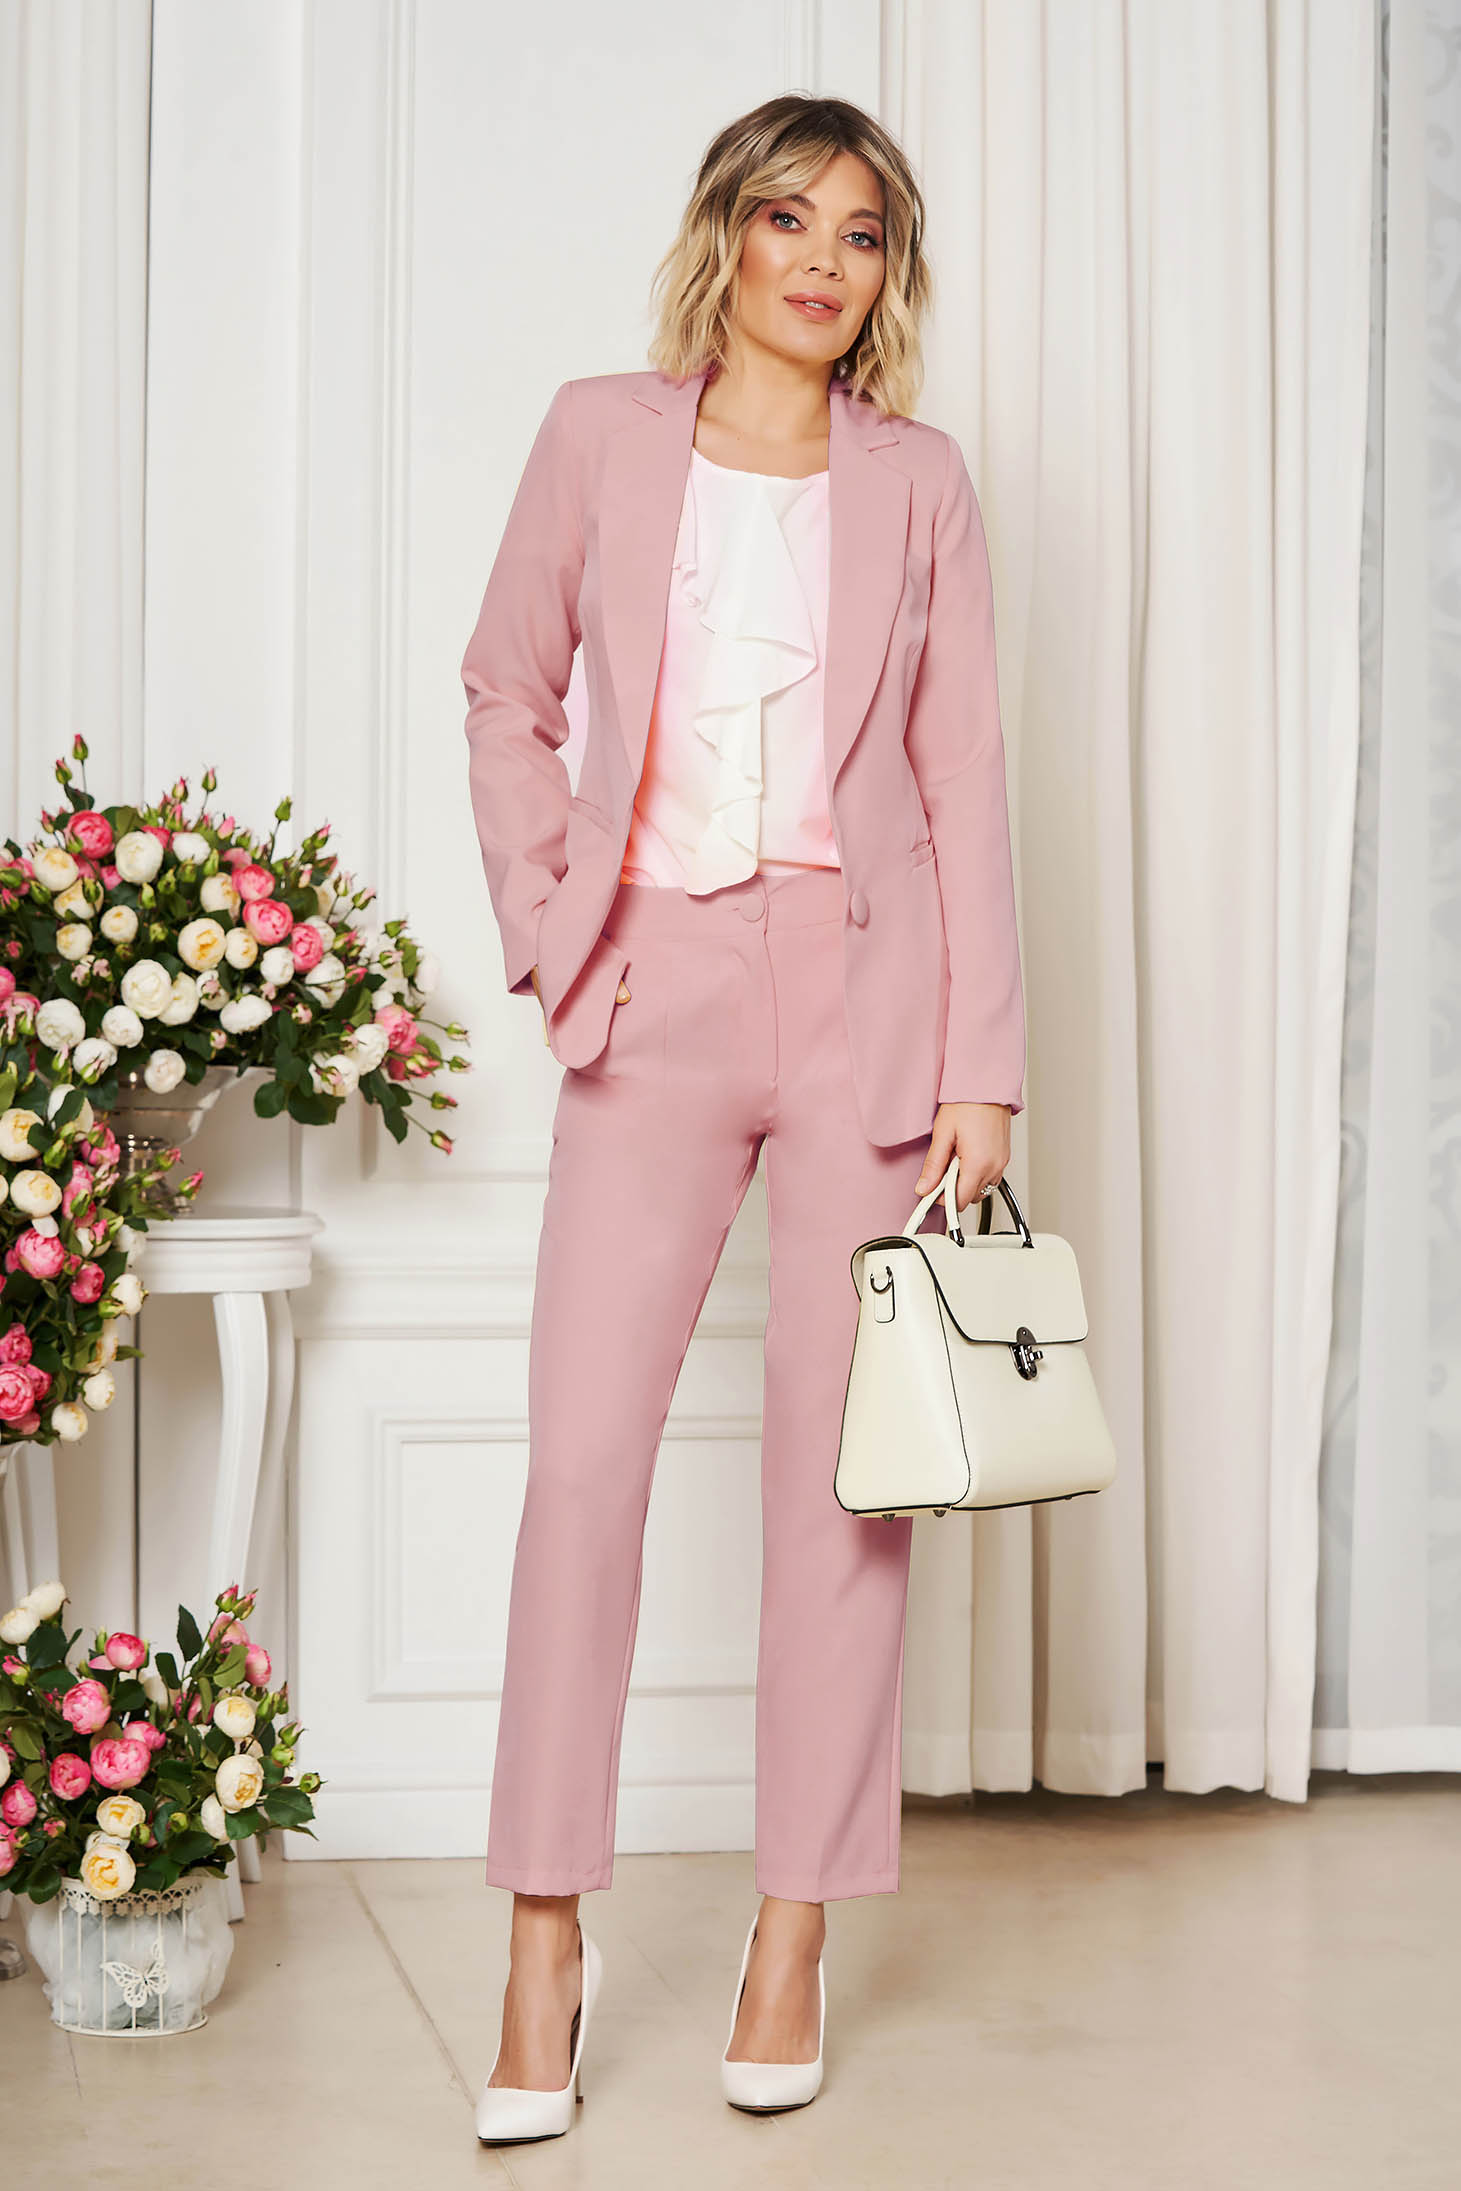 StarShinerS lightpink office trousers with pockets medium waist slightly elastic fabric with straight cut